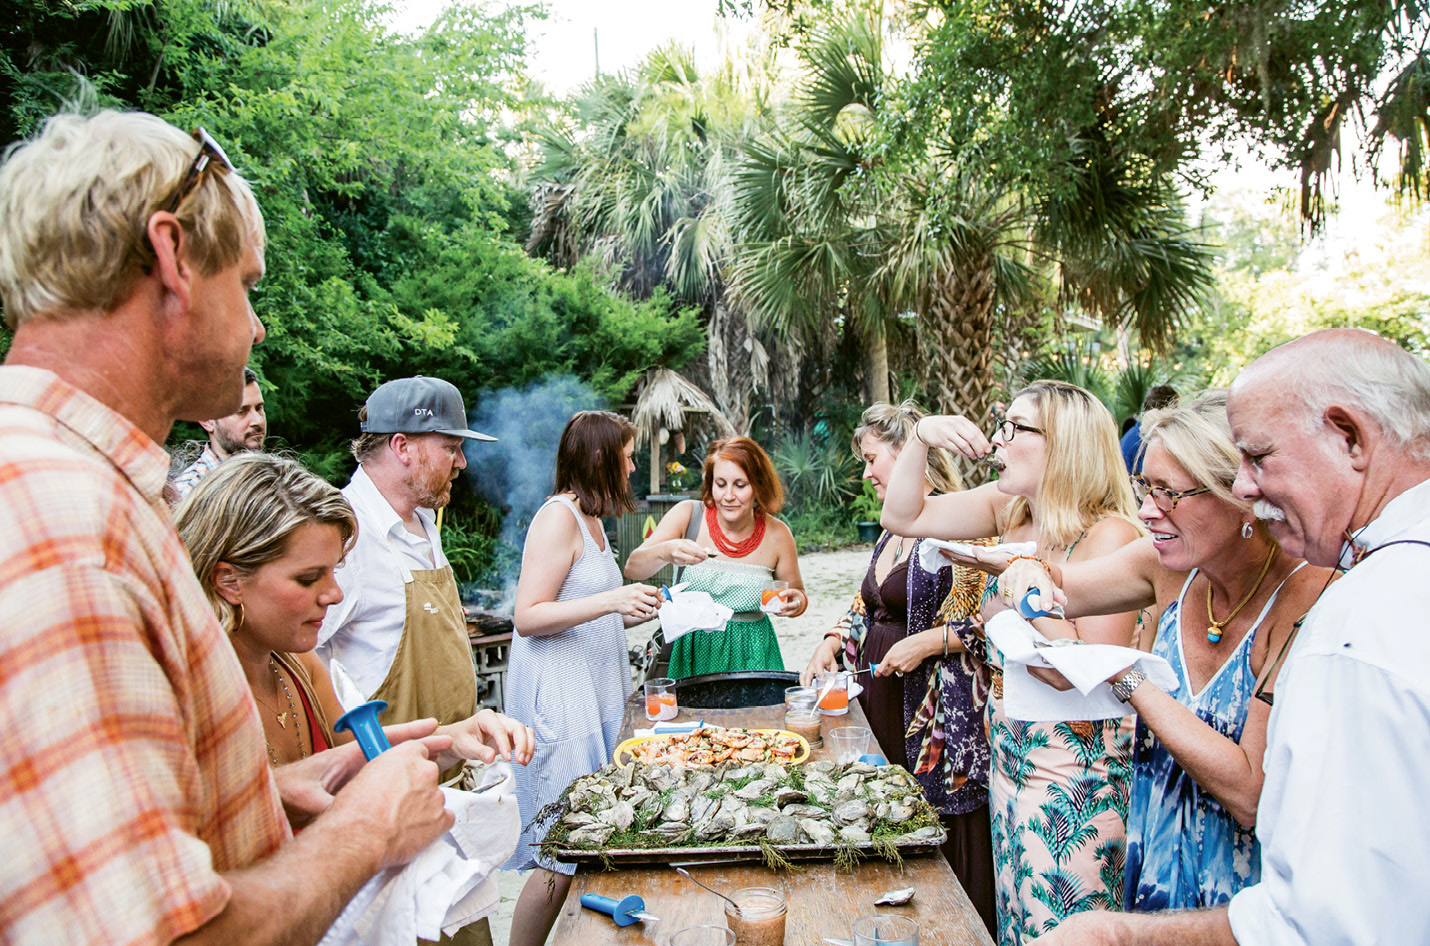 Guests peel shrimp and pry open juniper-roasted oysters only moments after Deihl pulls them from the fire pit. An evening breeze rustles the nearby juniper tree from which the garnishing sprigs were clipped.